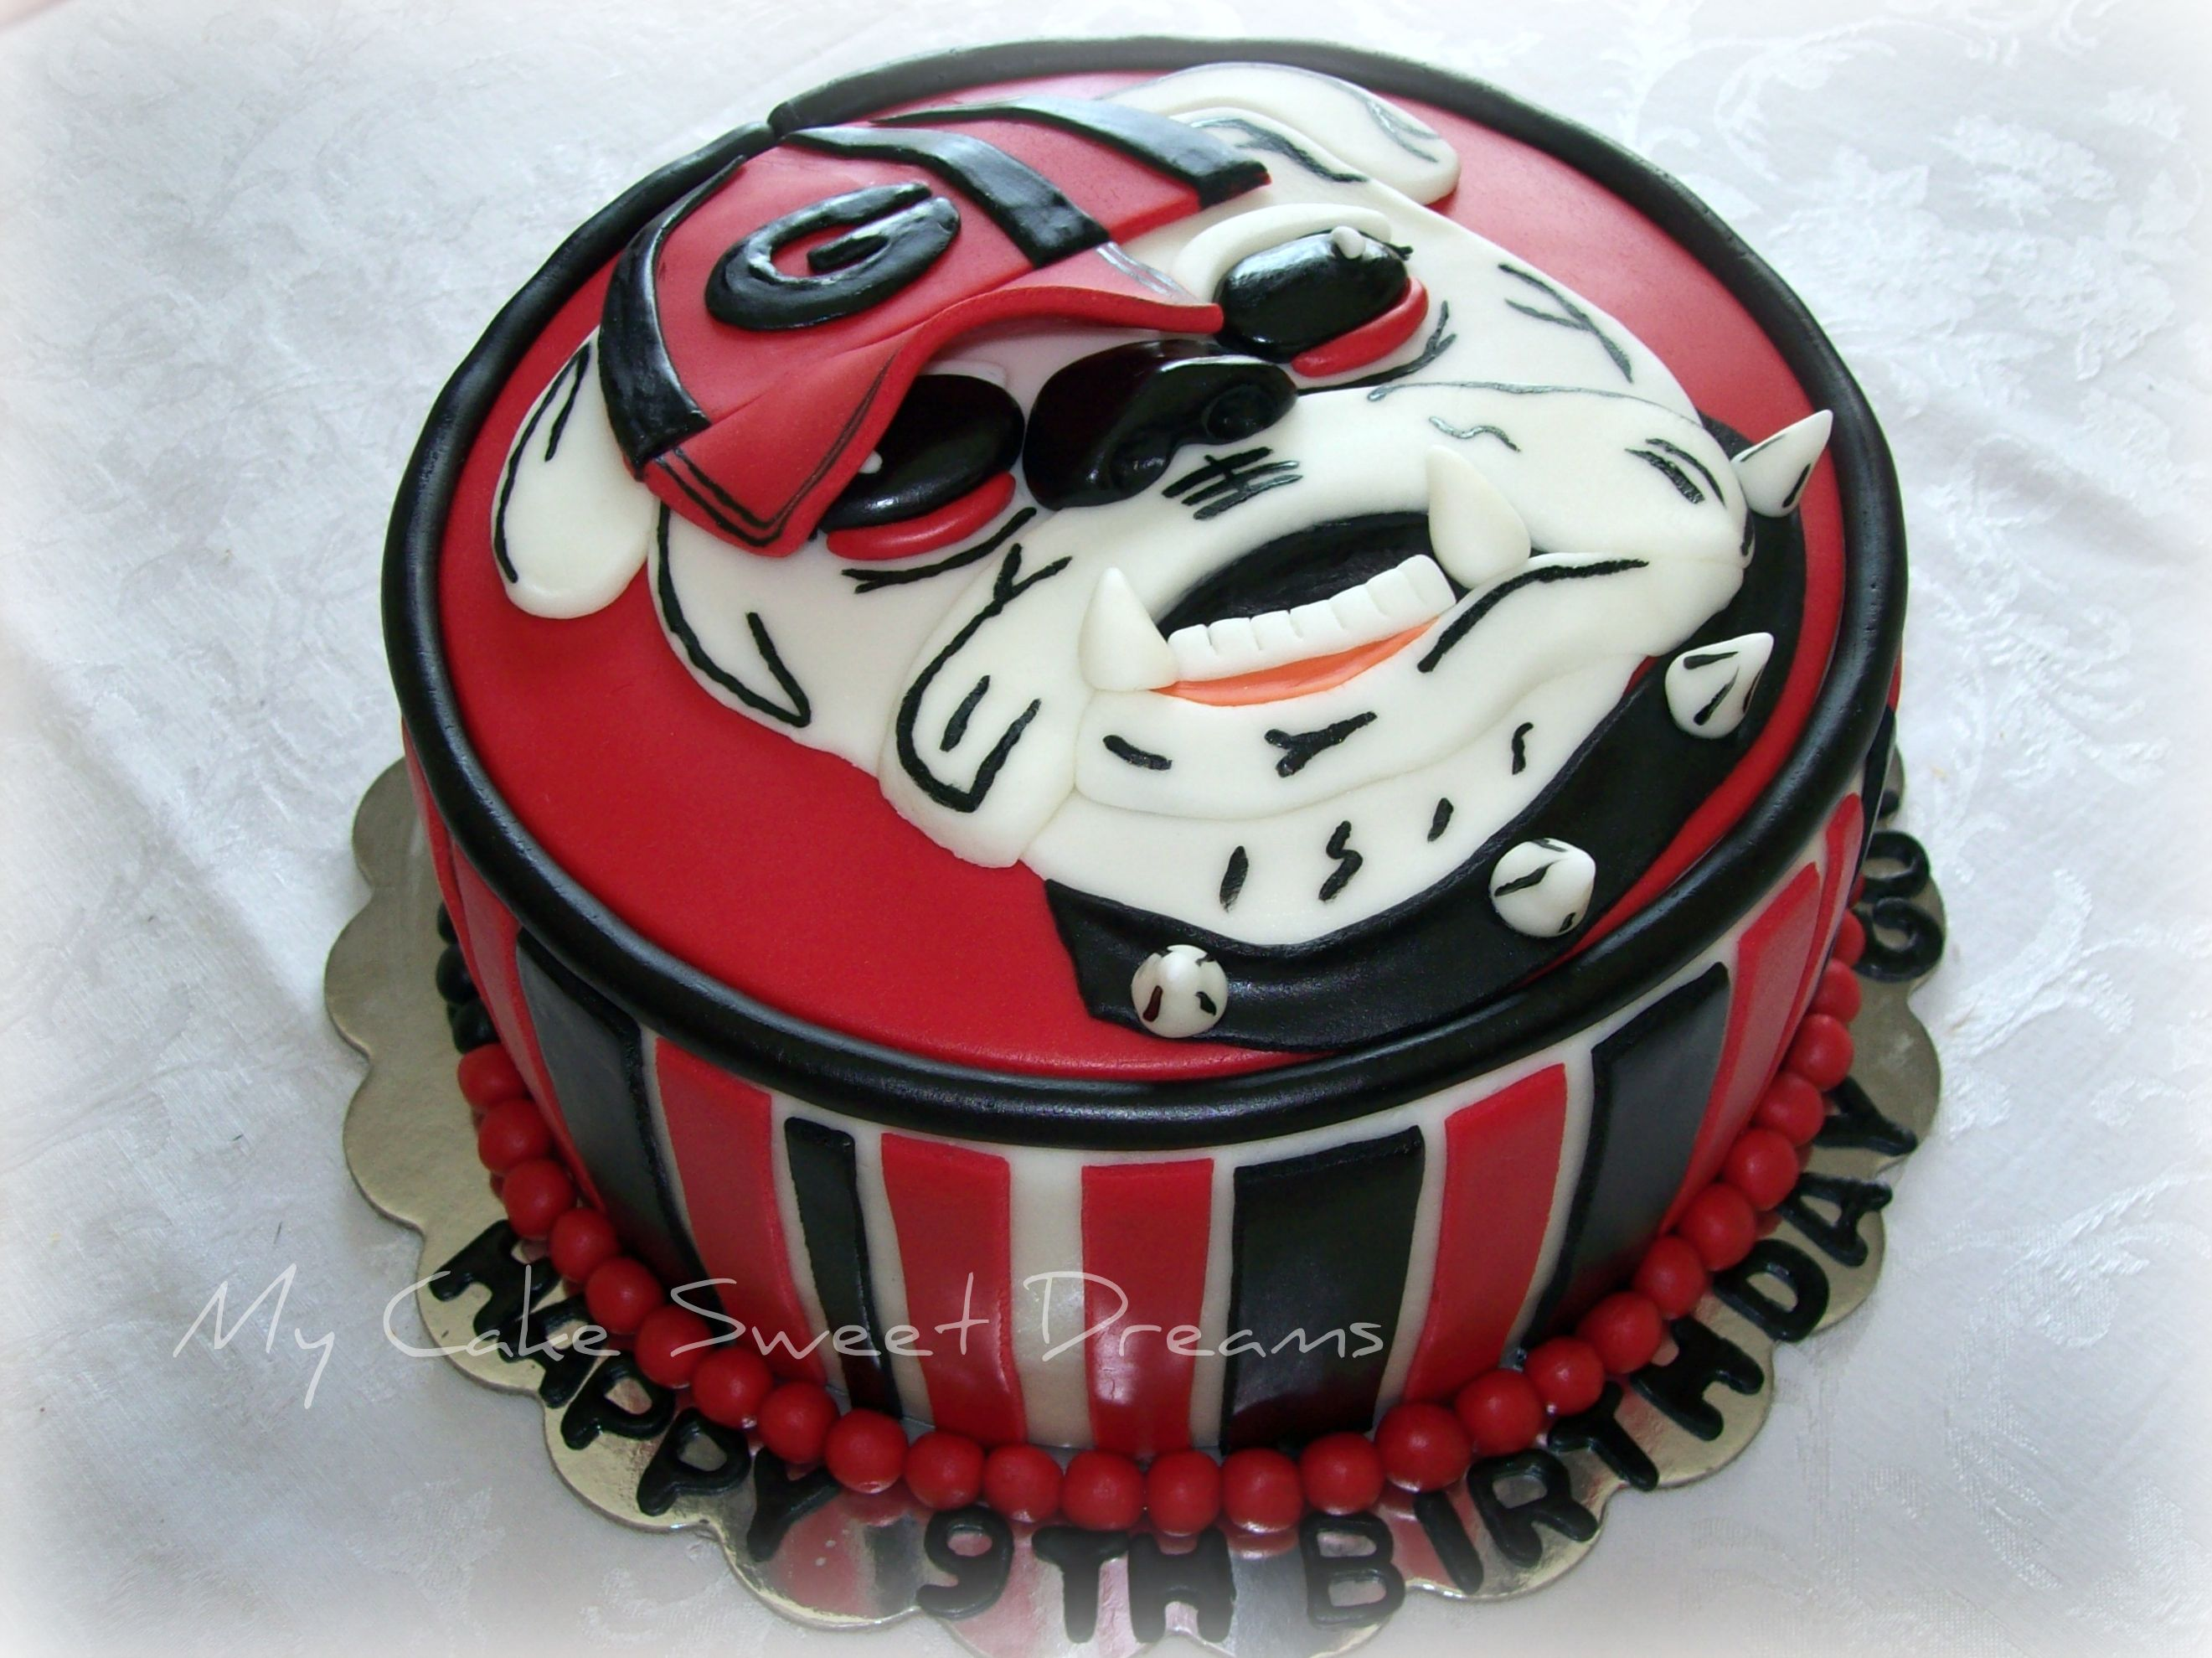 Astonishing Bulldog Cake Decorations Georgia Bulldog Birthday Cake With Funny Birthday Cards Online Elaedamsfinfo